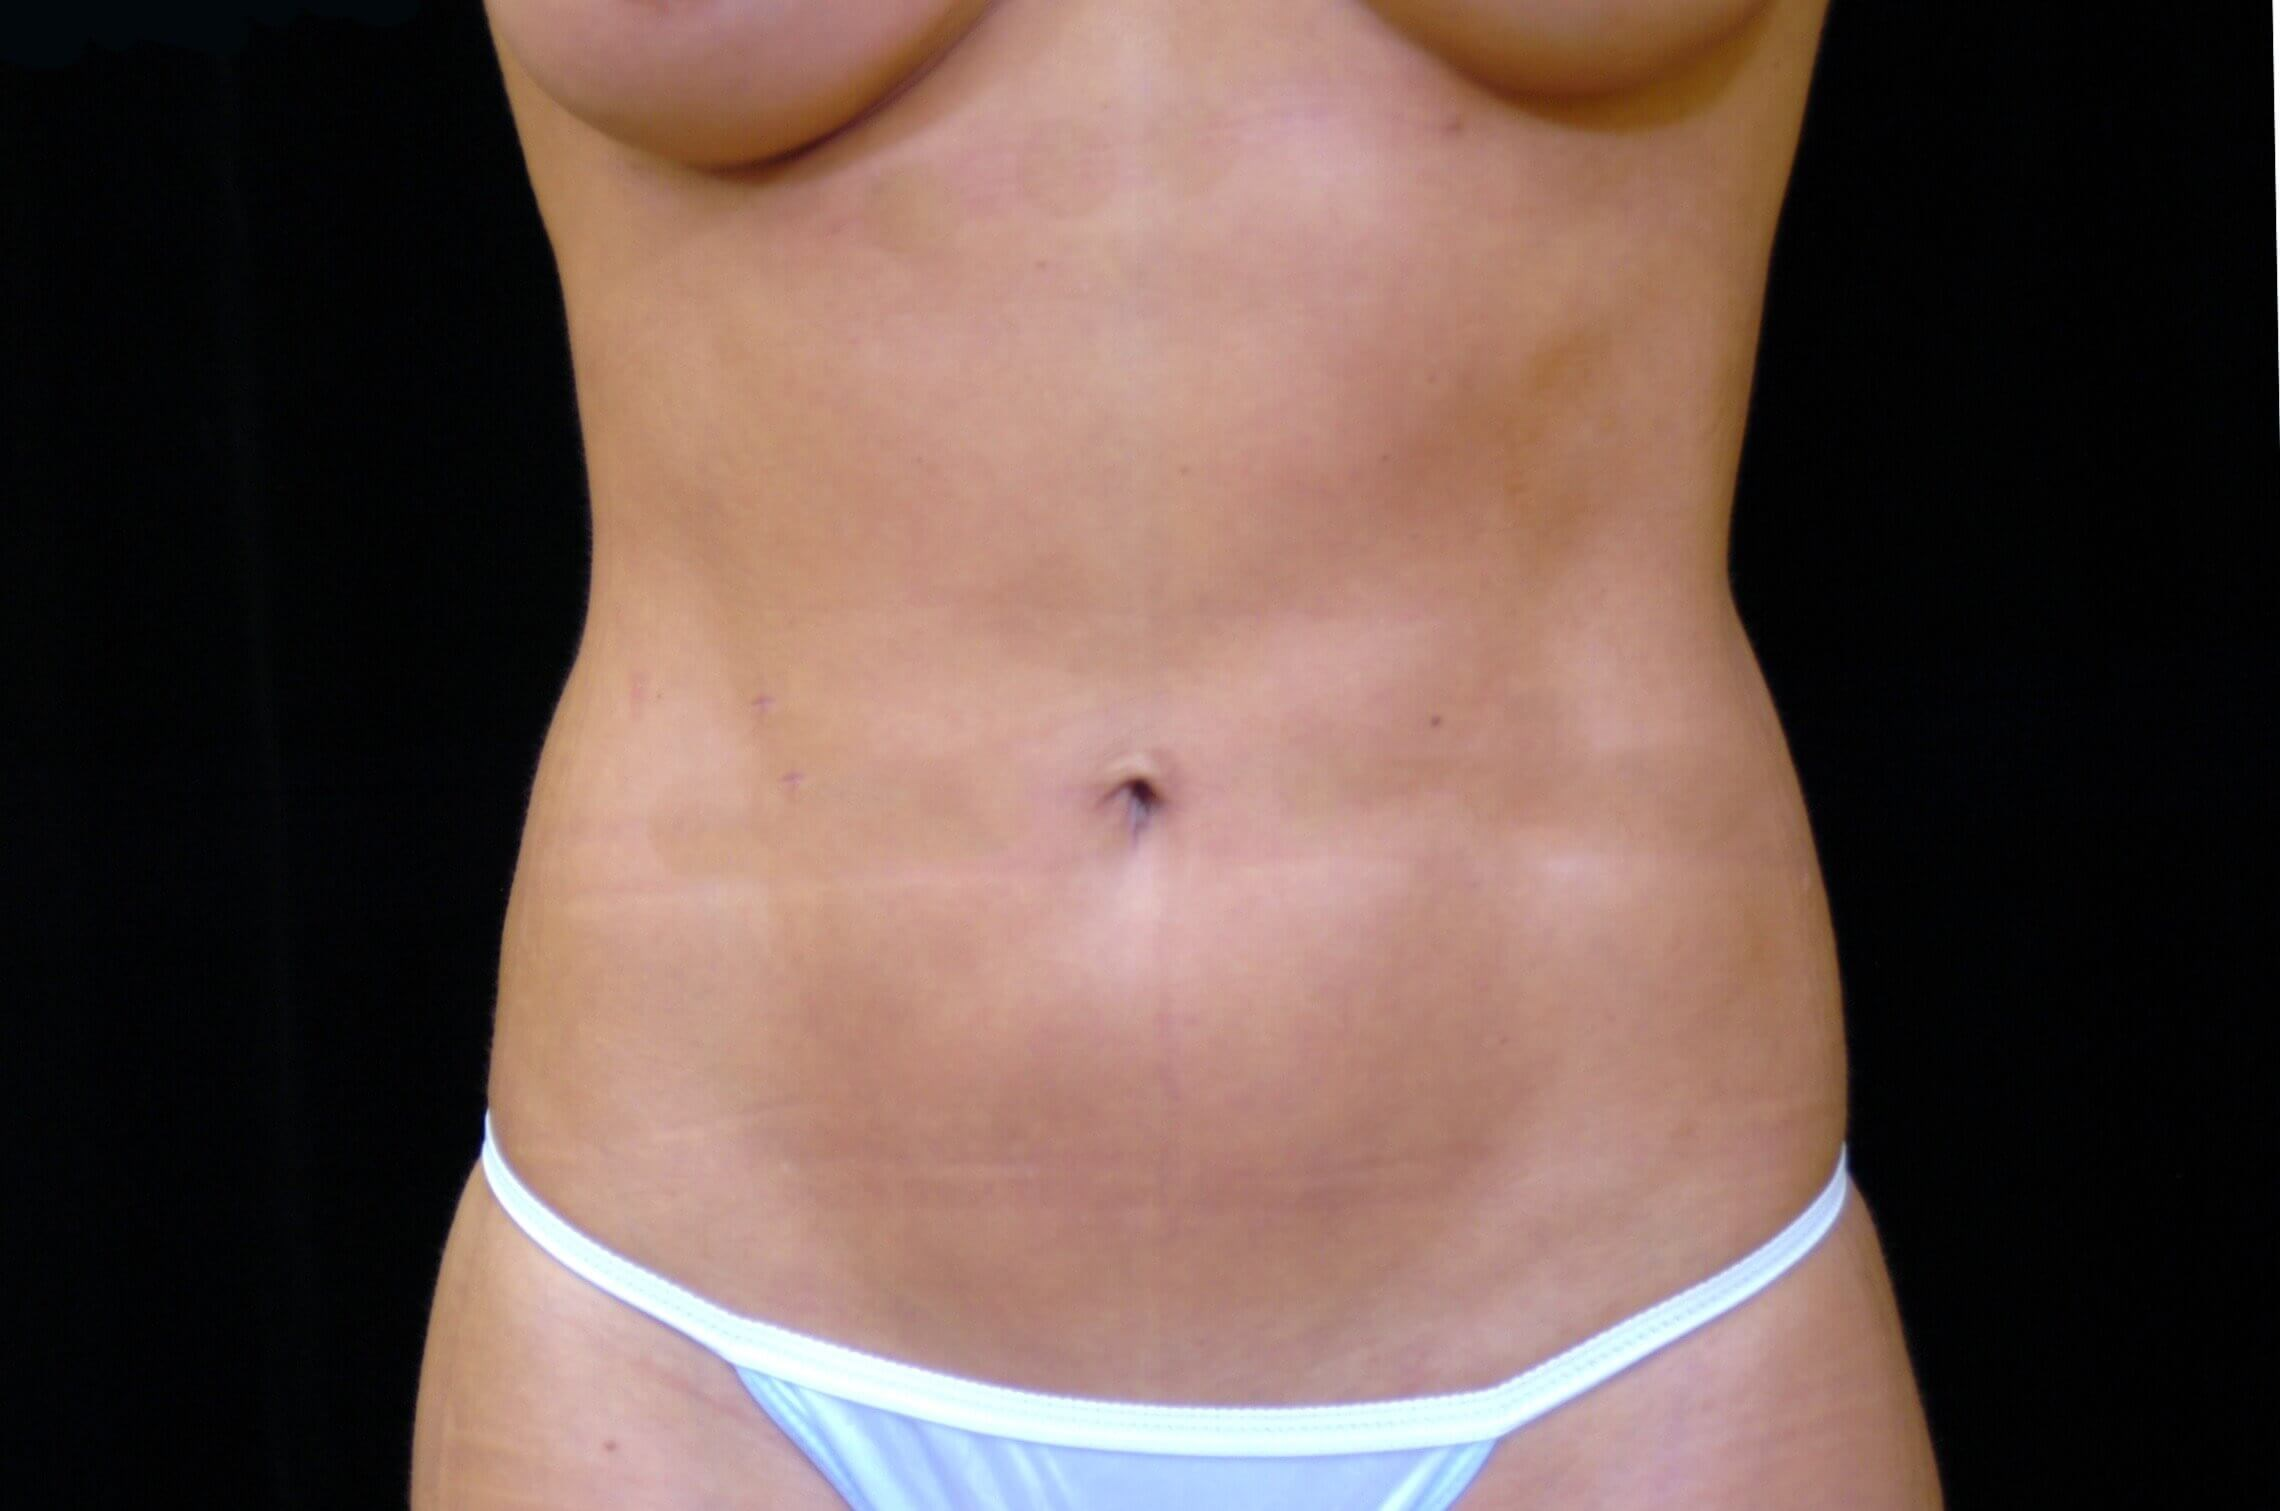 DALLAS, TEXAS WOMAN HAS HI-DEF LIPOSUCTION TO ABS AND LOVEHANDLES